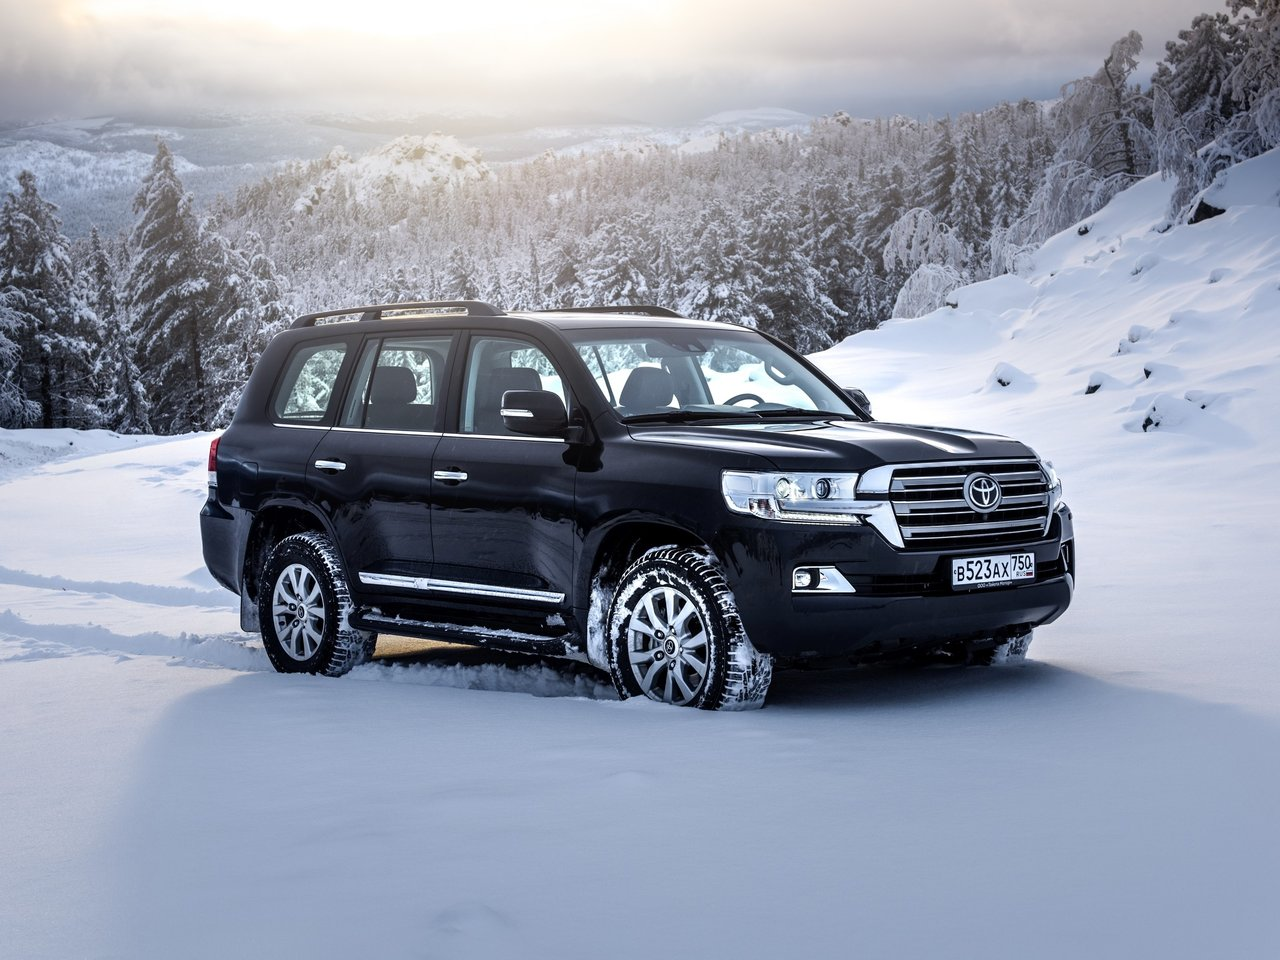 Land Cruiser 200 Facelift 2015